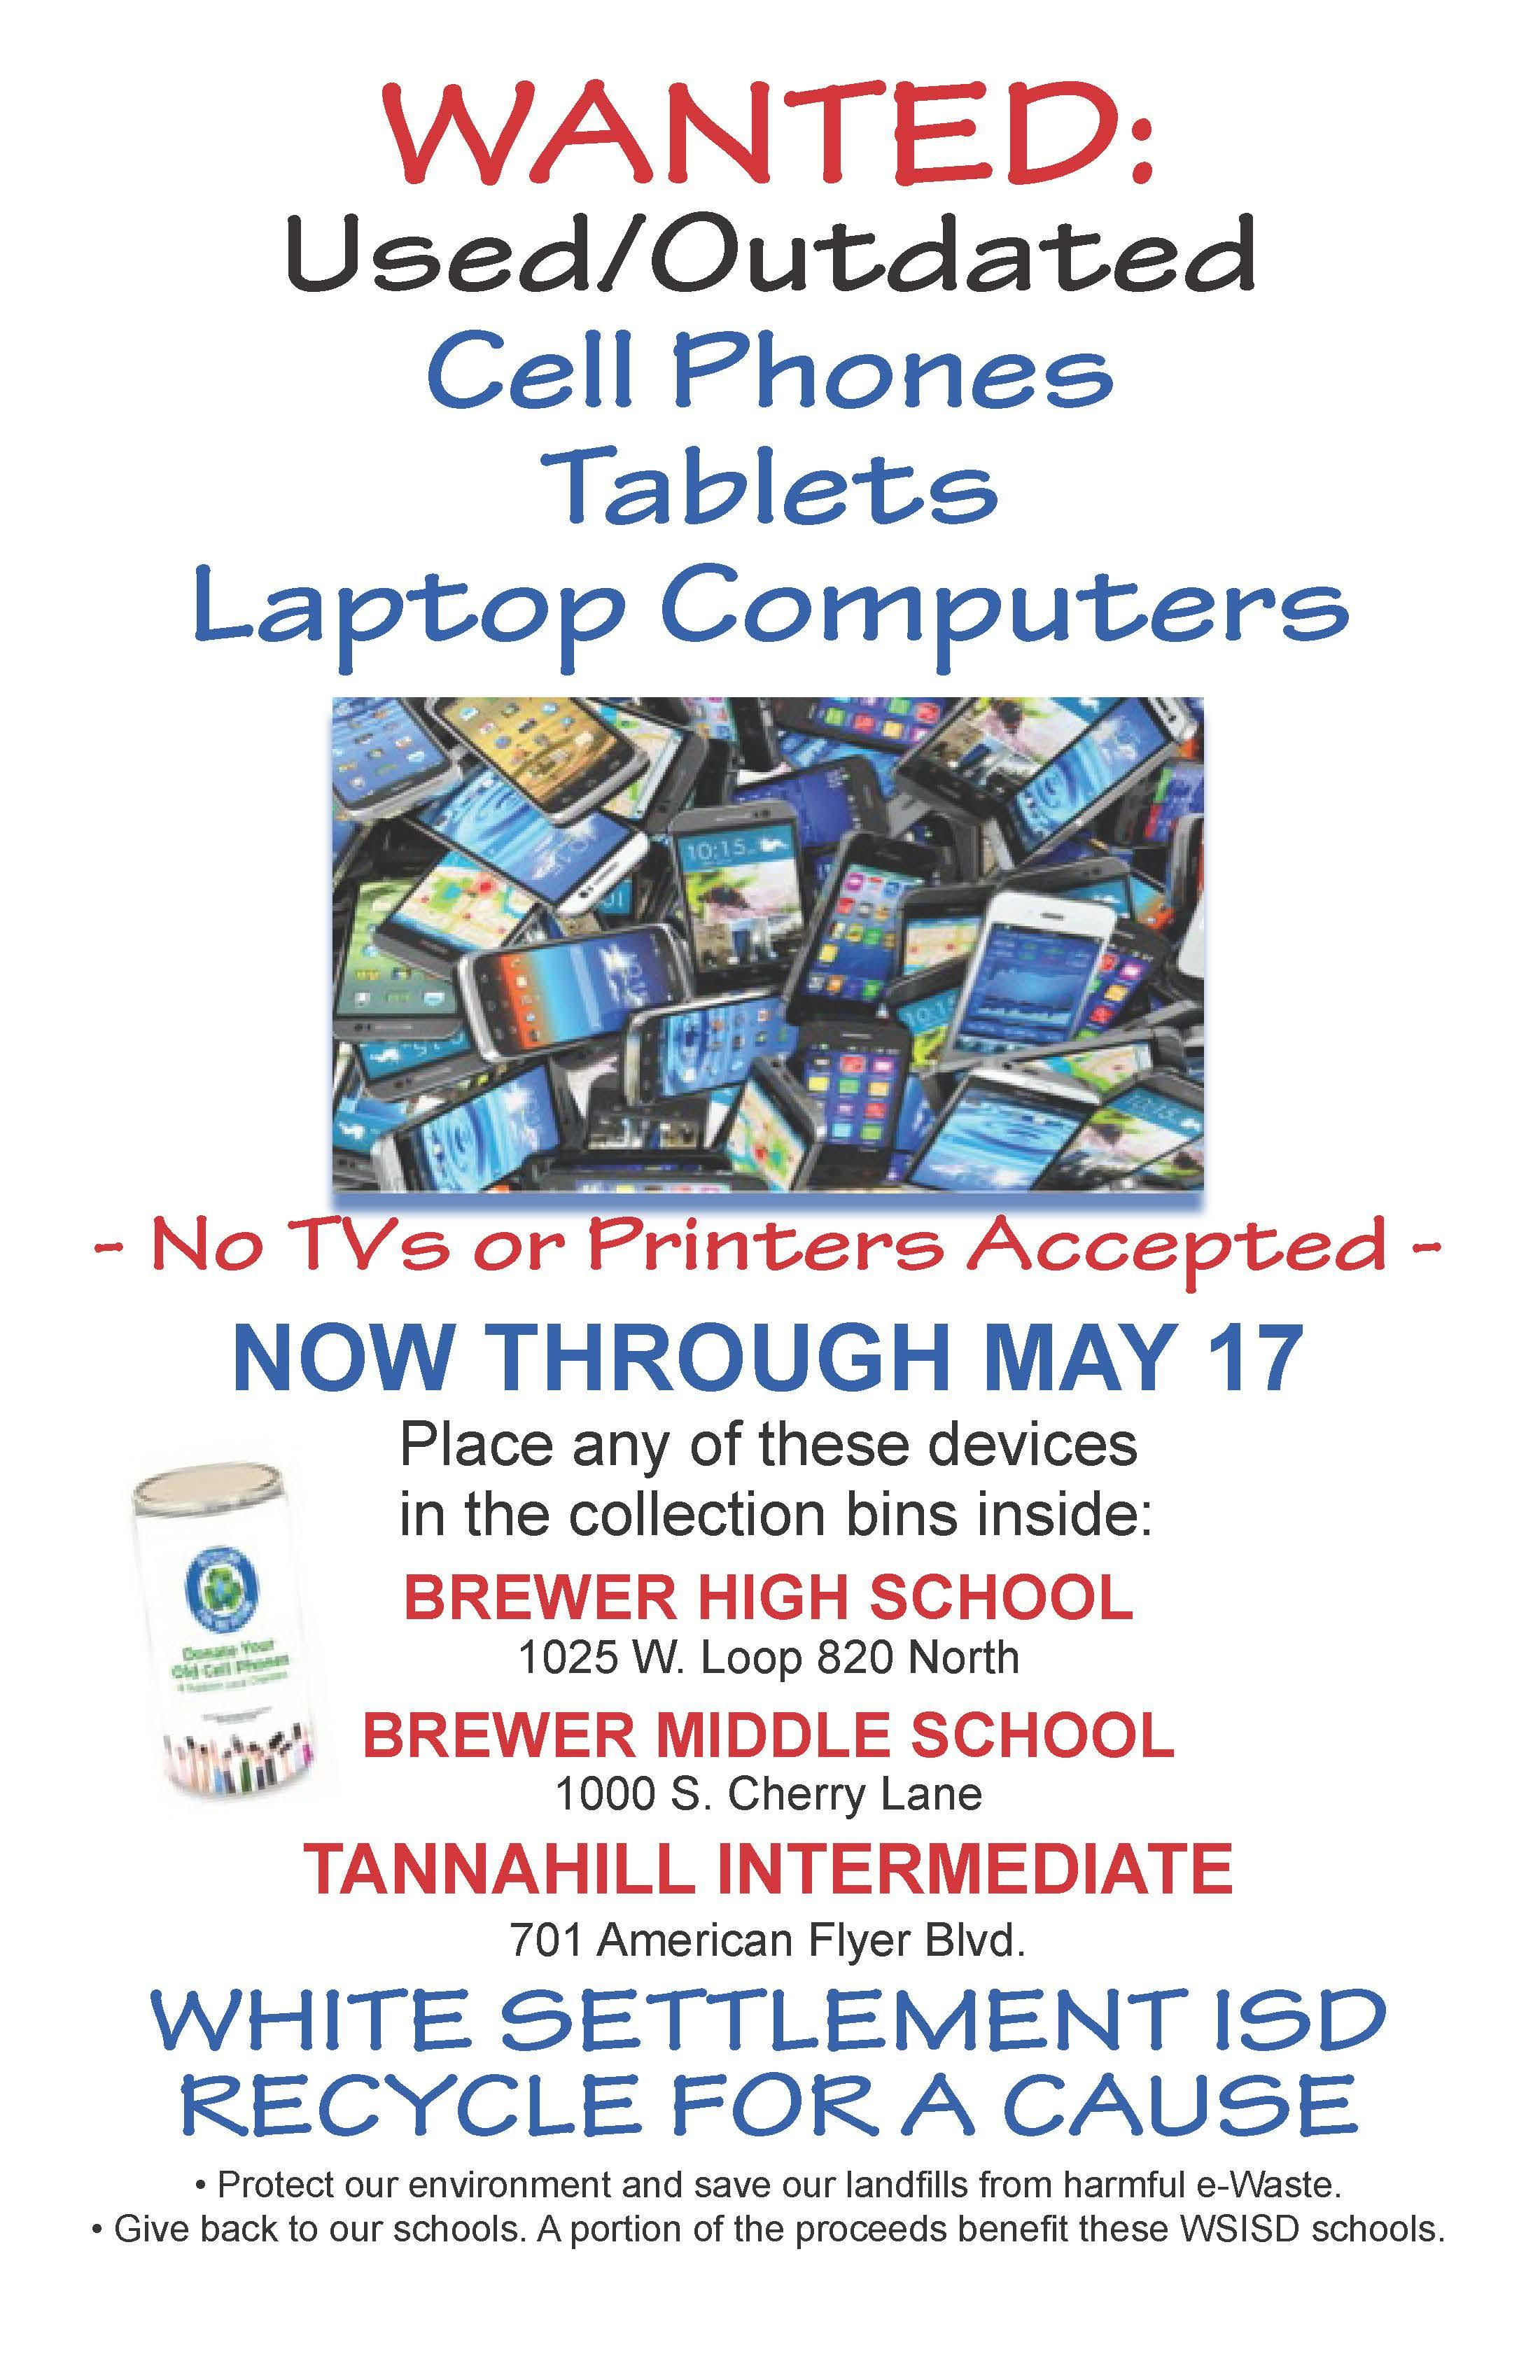 Now through May 17, White Settlement ISD has a great way for our citizens to get rid of outdated and used cell phones, laptops and tablets. We now have drop off bins inside Brewer High School, Brewer Middle School and Tannahill Intermediate. Help protect our environment and help our schools raise money